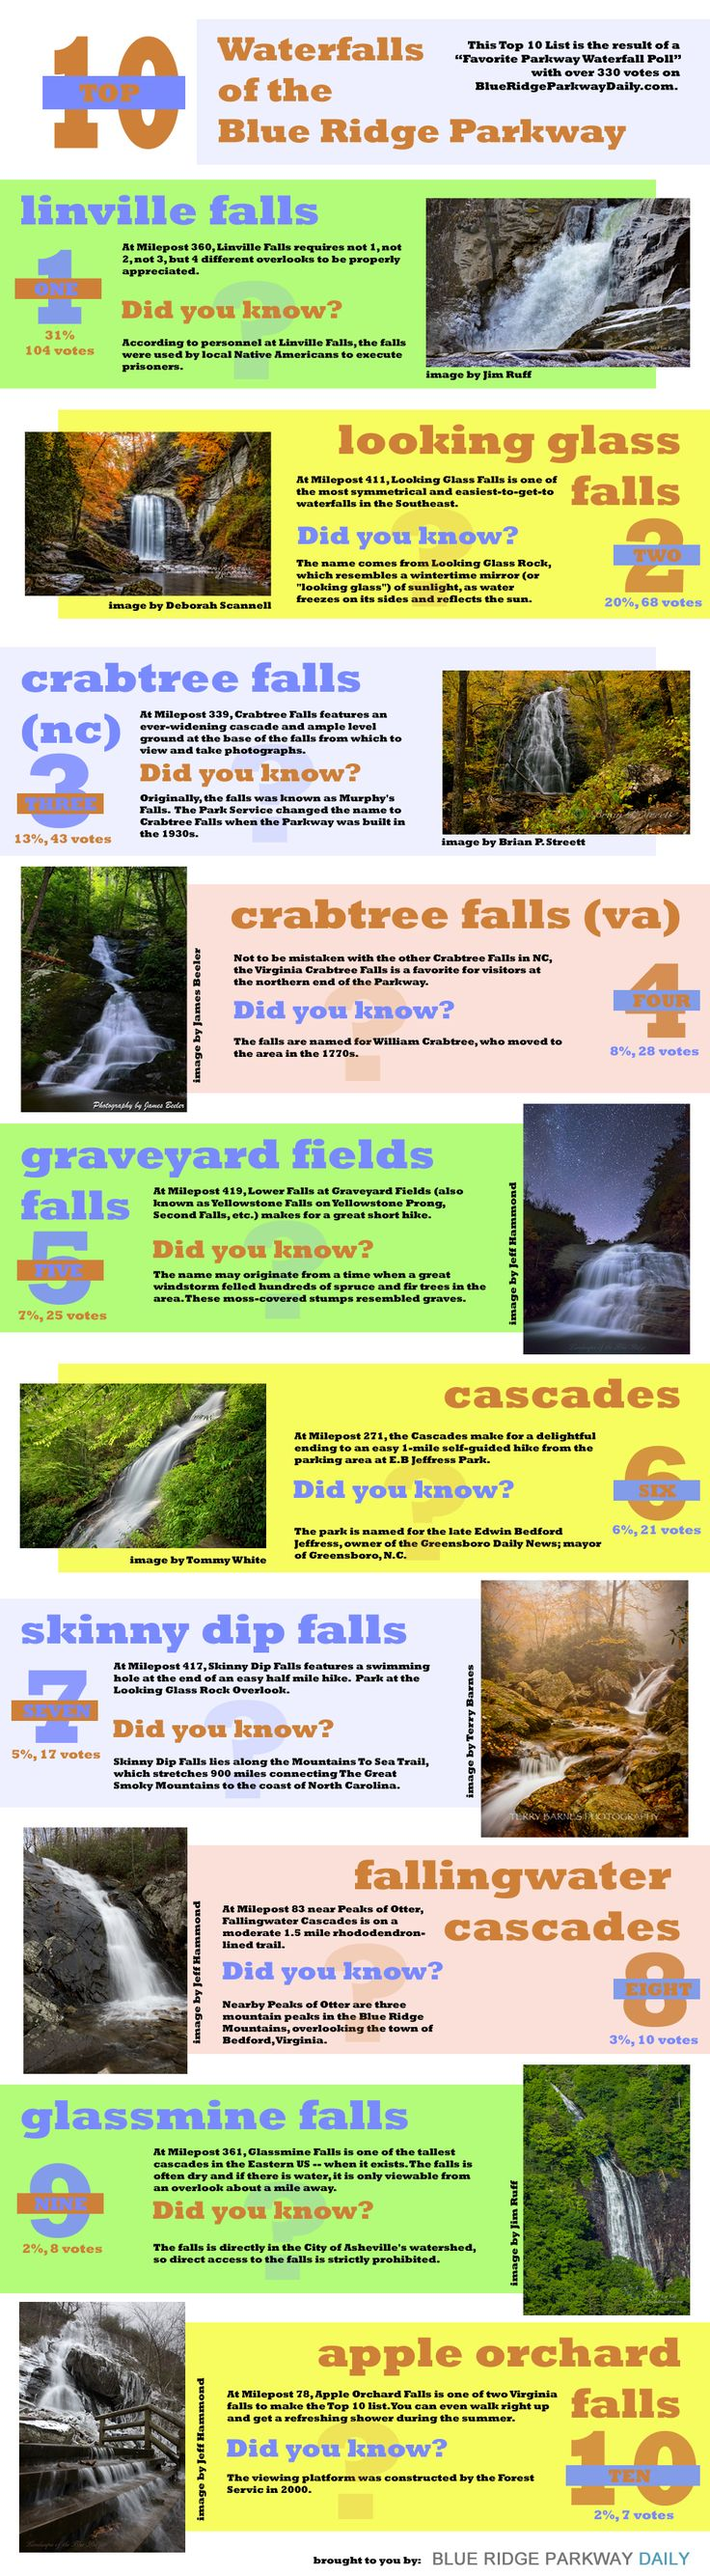 The Top 10 Blue Ridge Parkway Waterfalls as voted on by our site visitors.  This list and gallery is the result of our poll which has over 330 votes. Click the image above for more details.